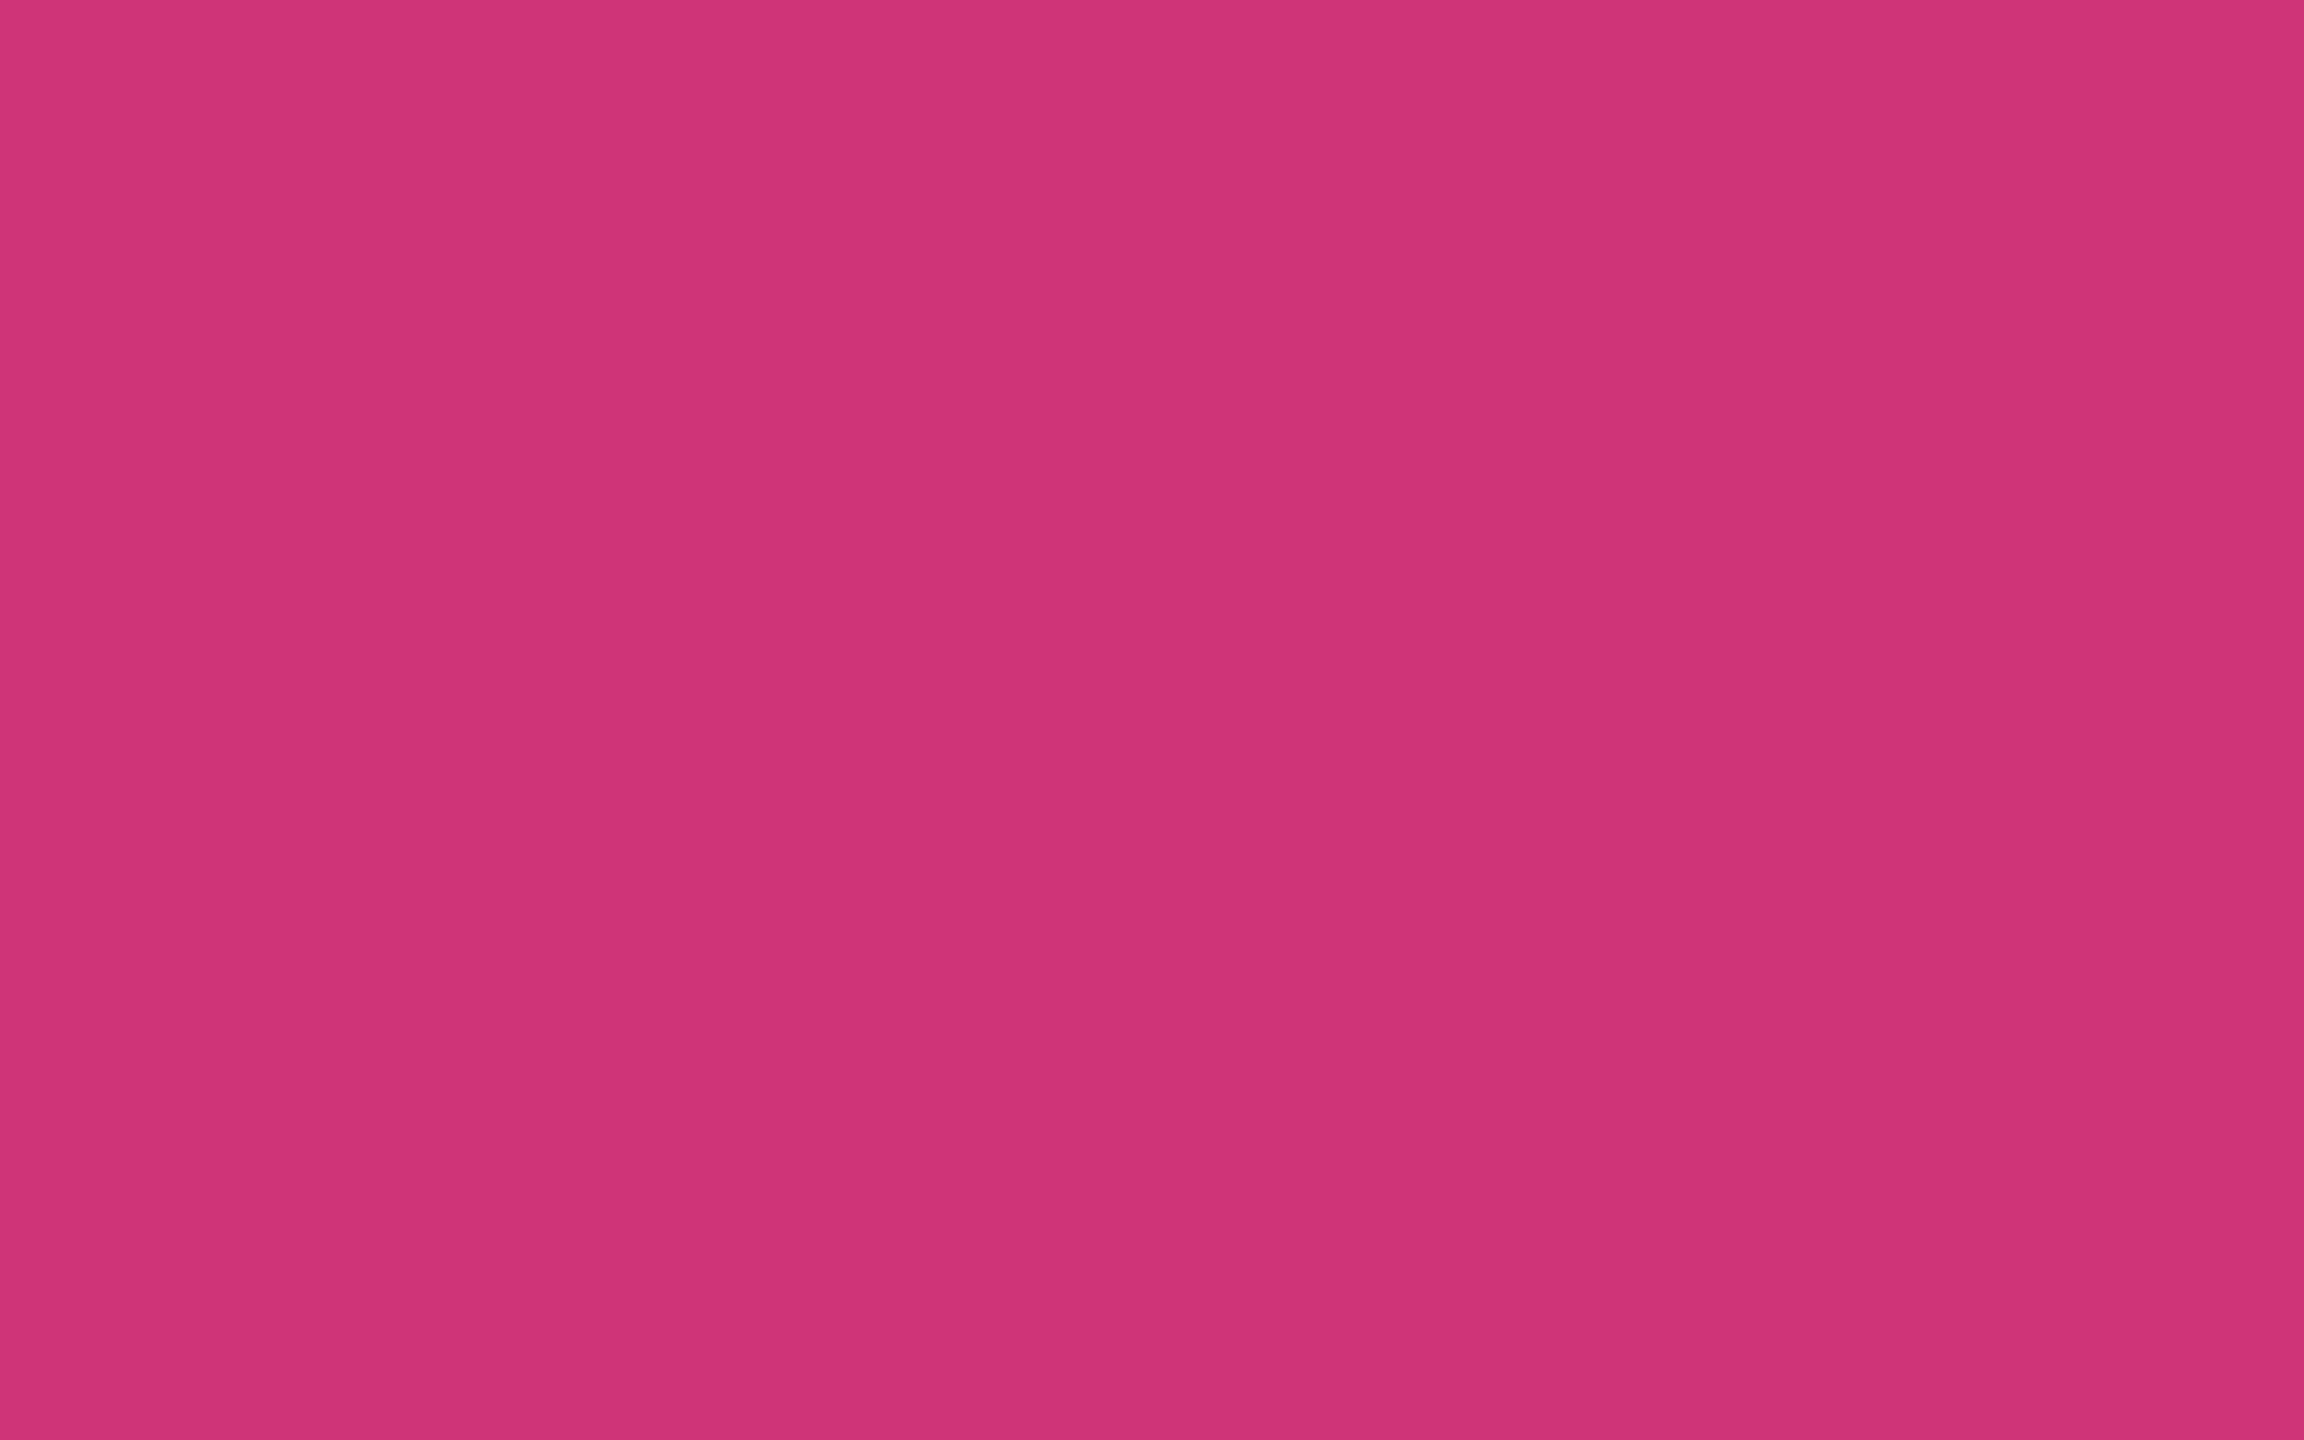 2304x1440 Telemagenta Solid Color Background